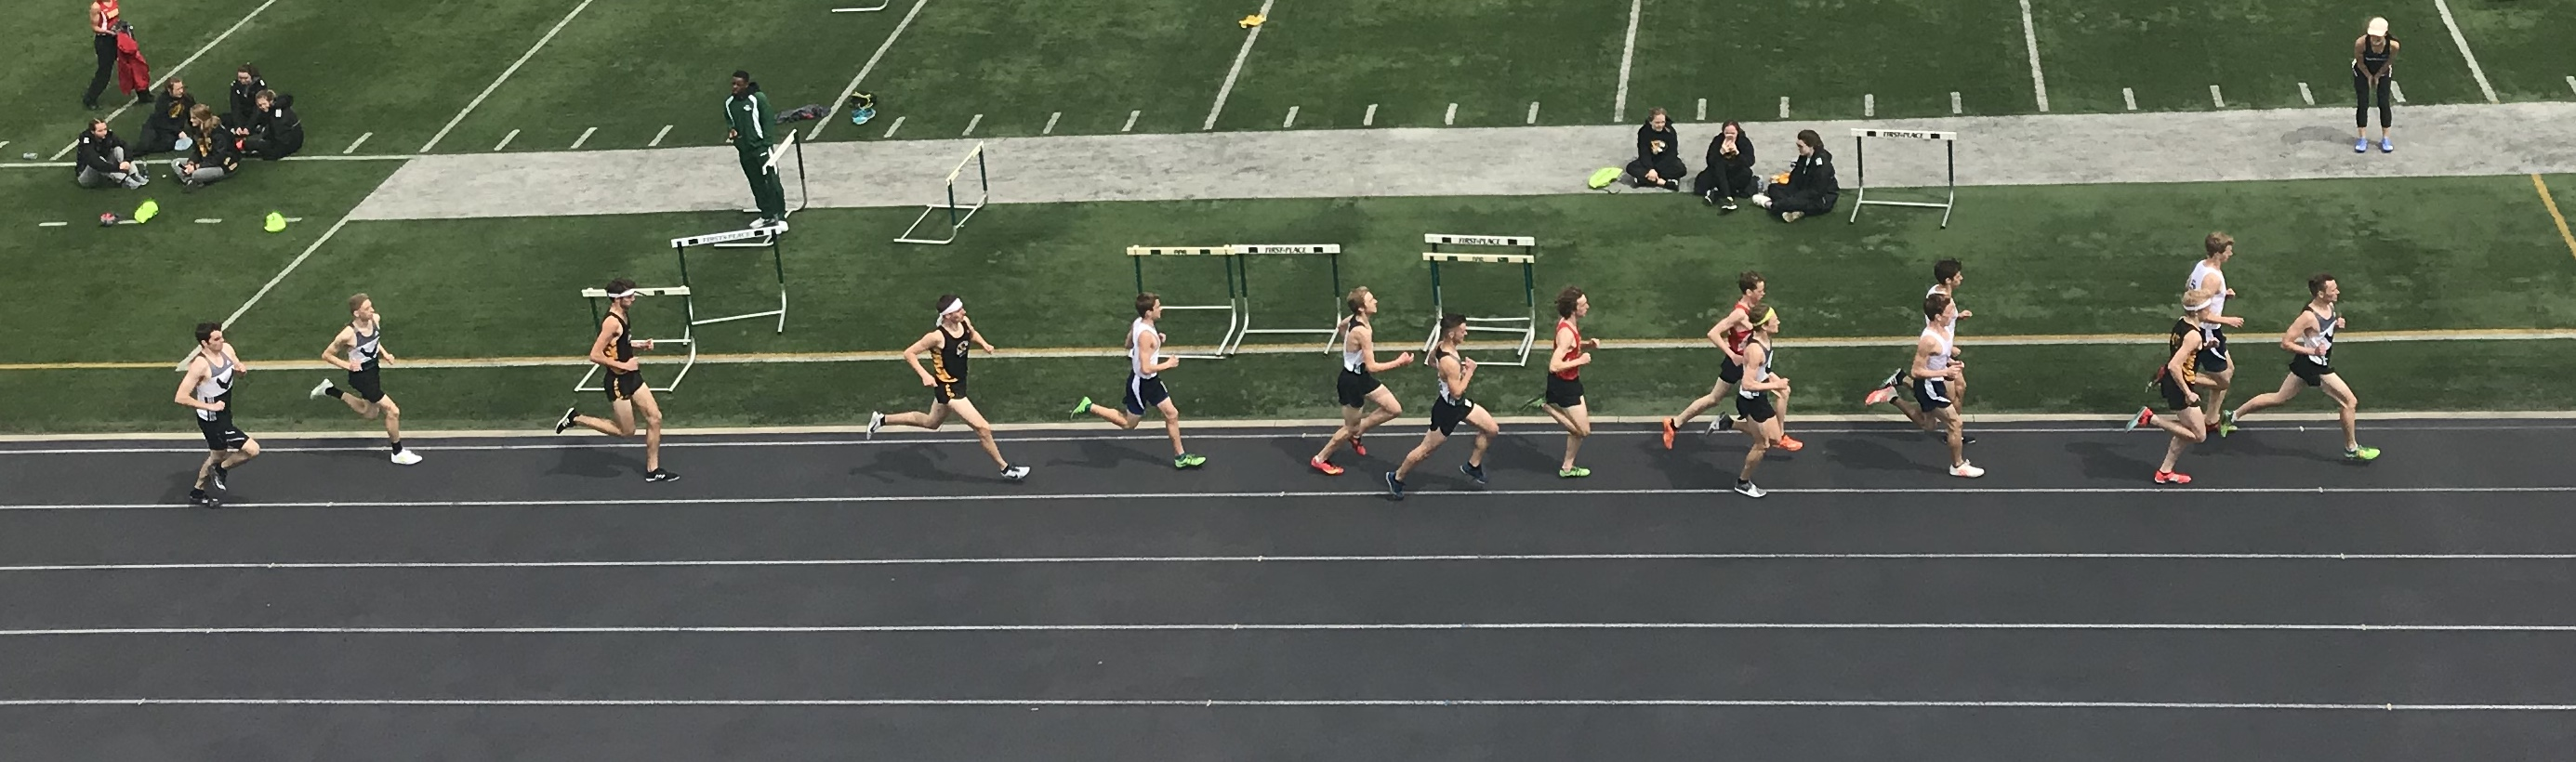 Nordonia Track Meet Hudson, Cuyahoga Falls, Brecksville - From a Birds Eye View 4-21-18 (photos and video)